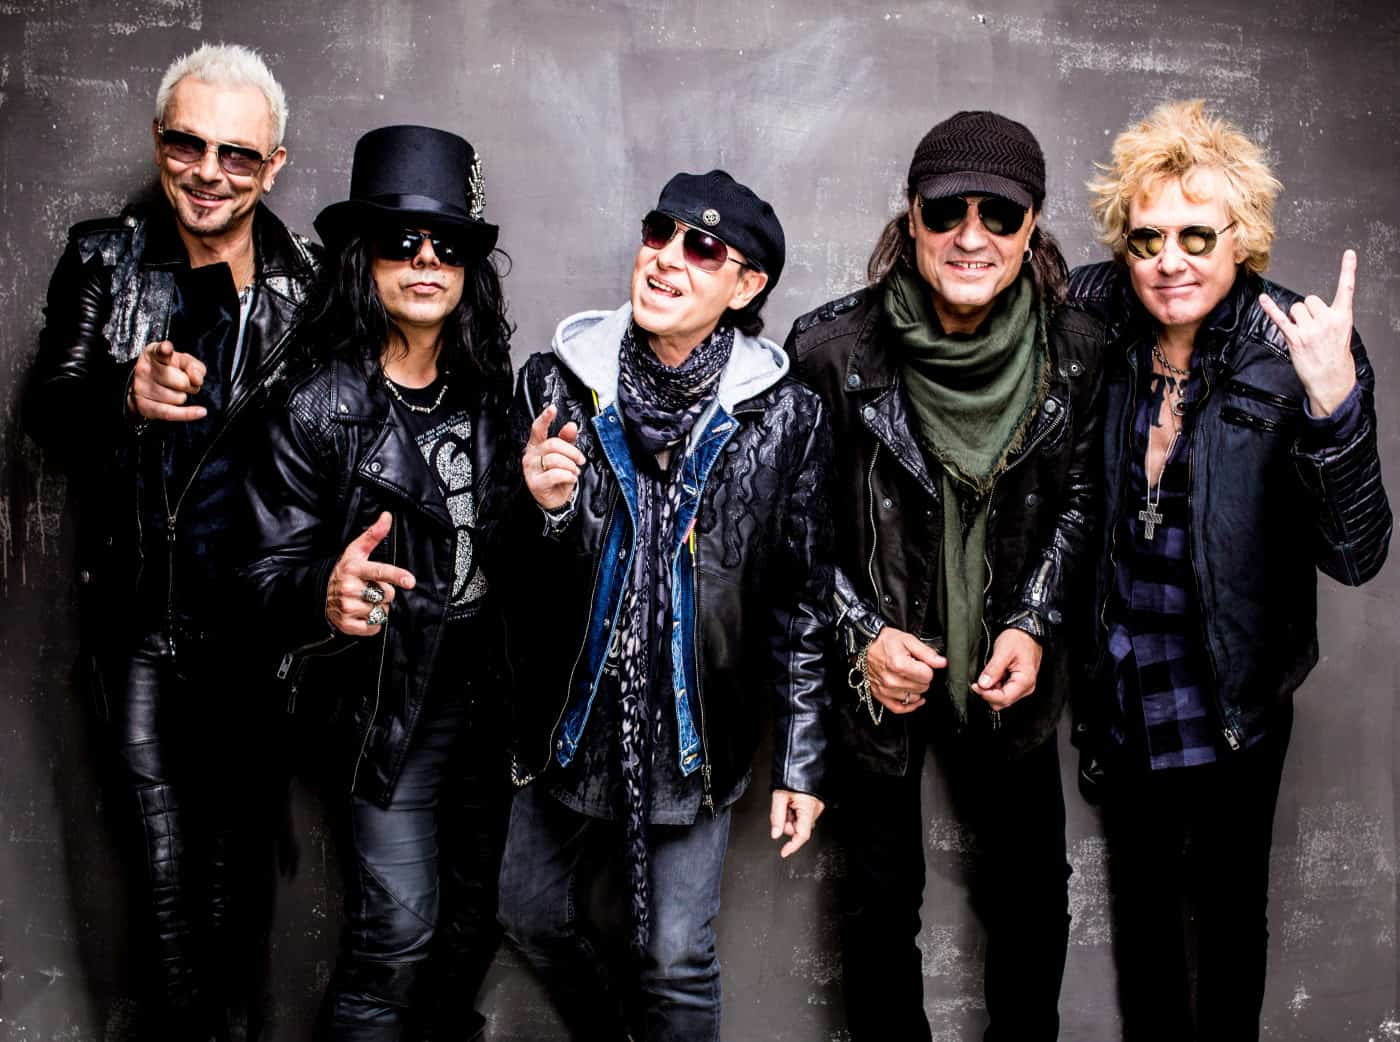 Scorpions_Return To Forever_c Oliver Rath_01-66642154